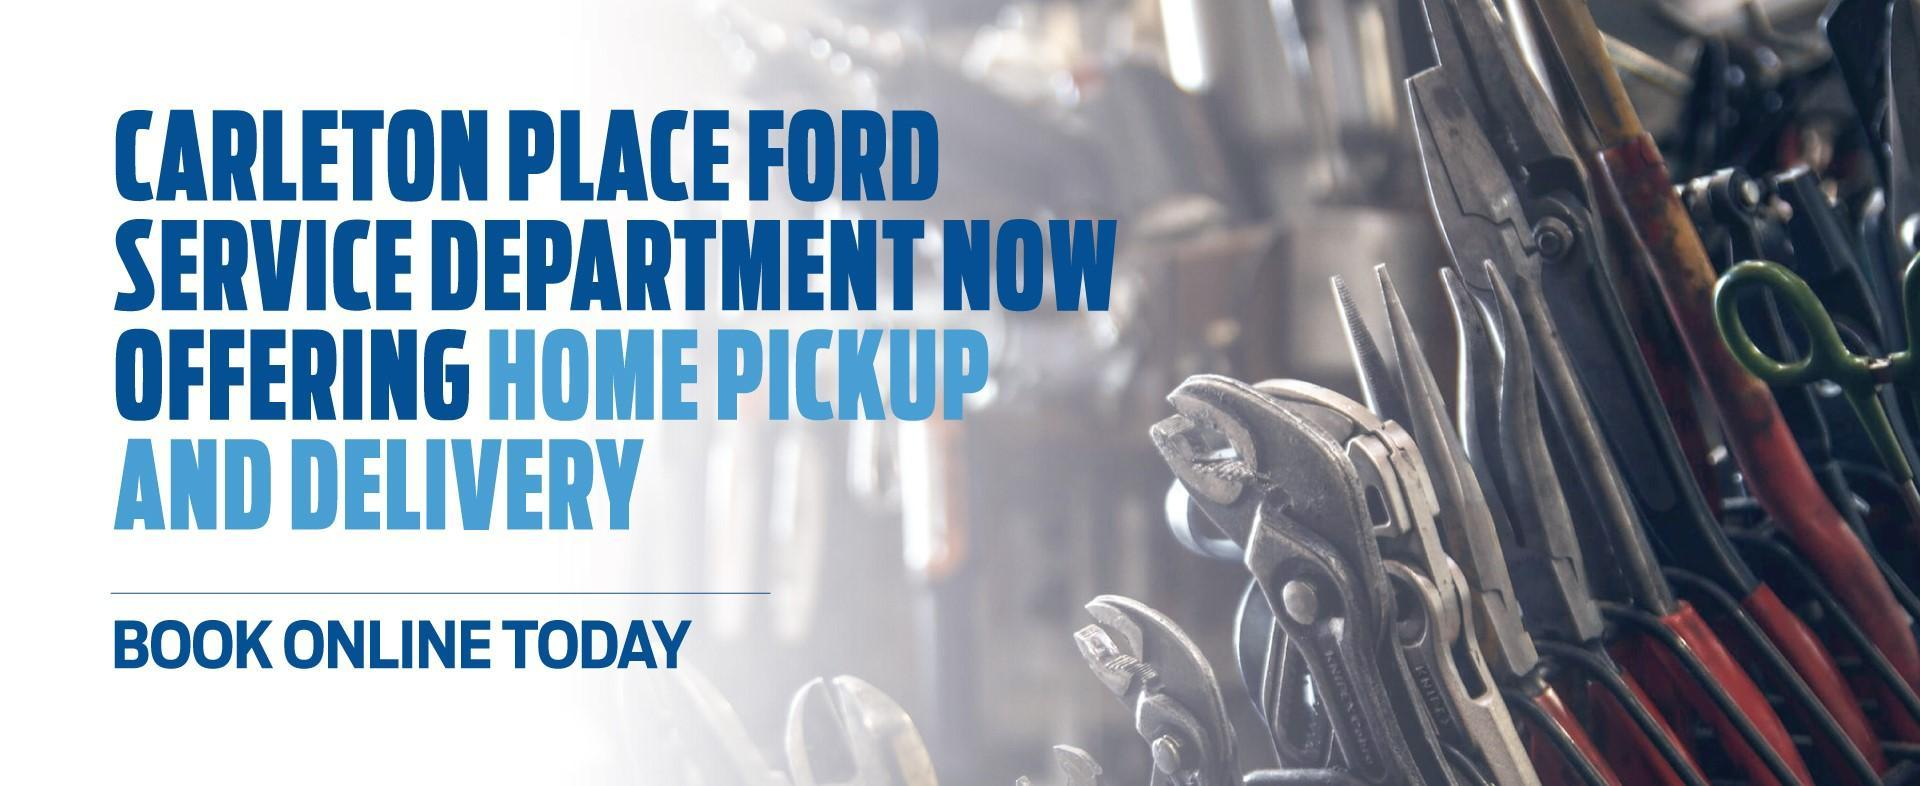 Carleton Place Ford Service Department